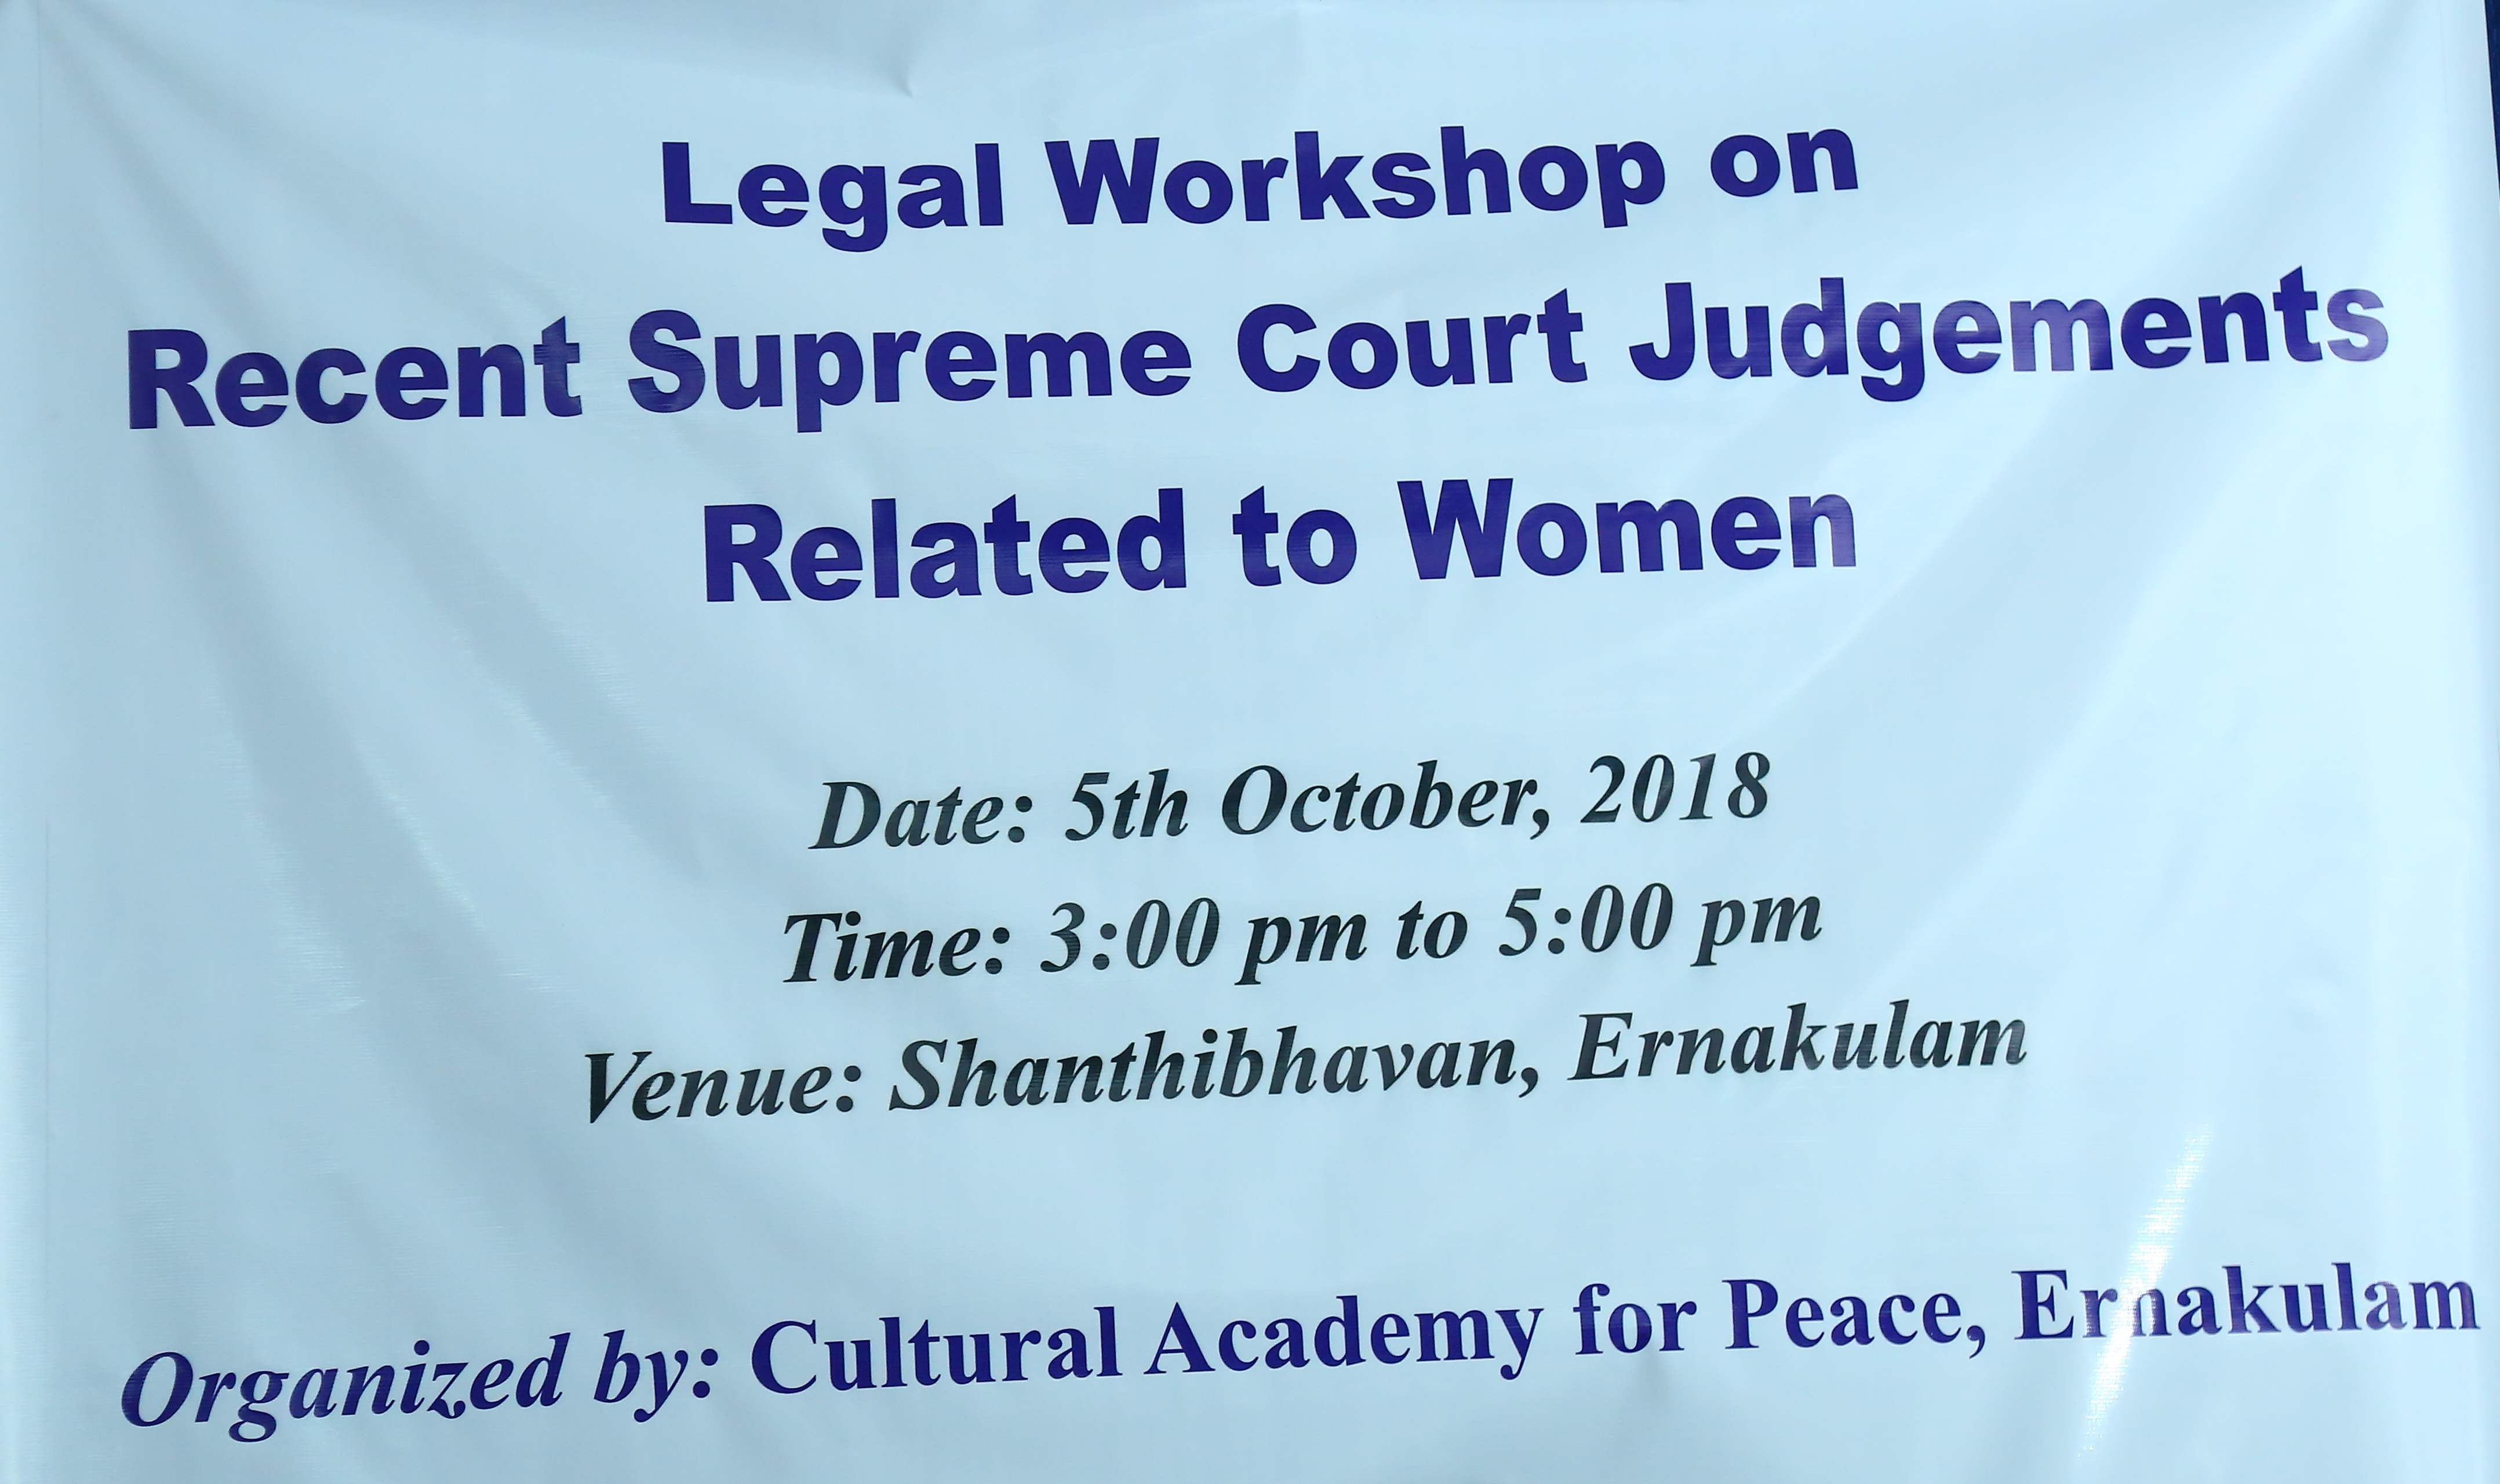 Legal Workshop (5th October, 2018)